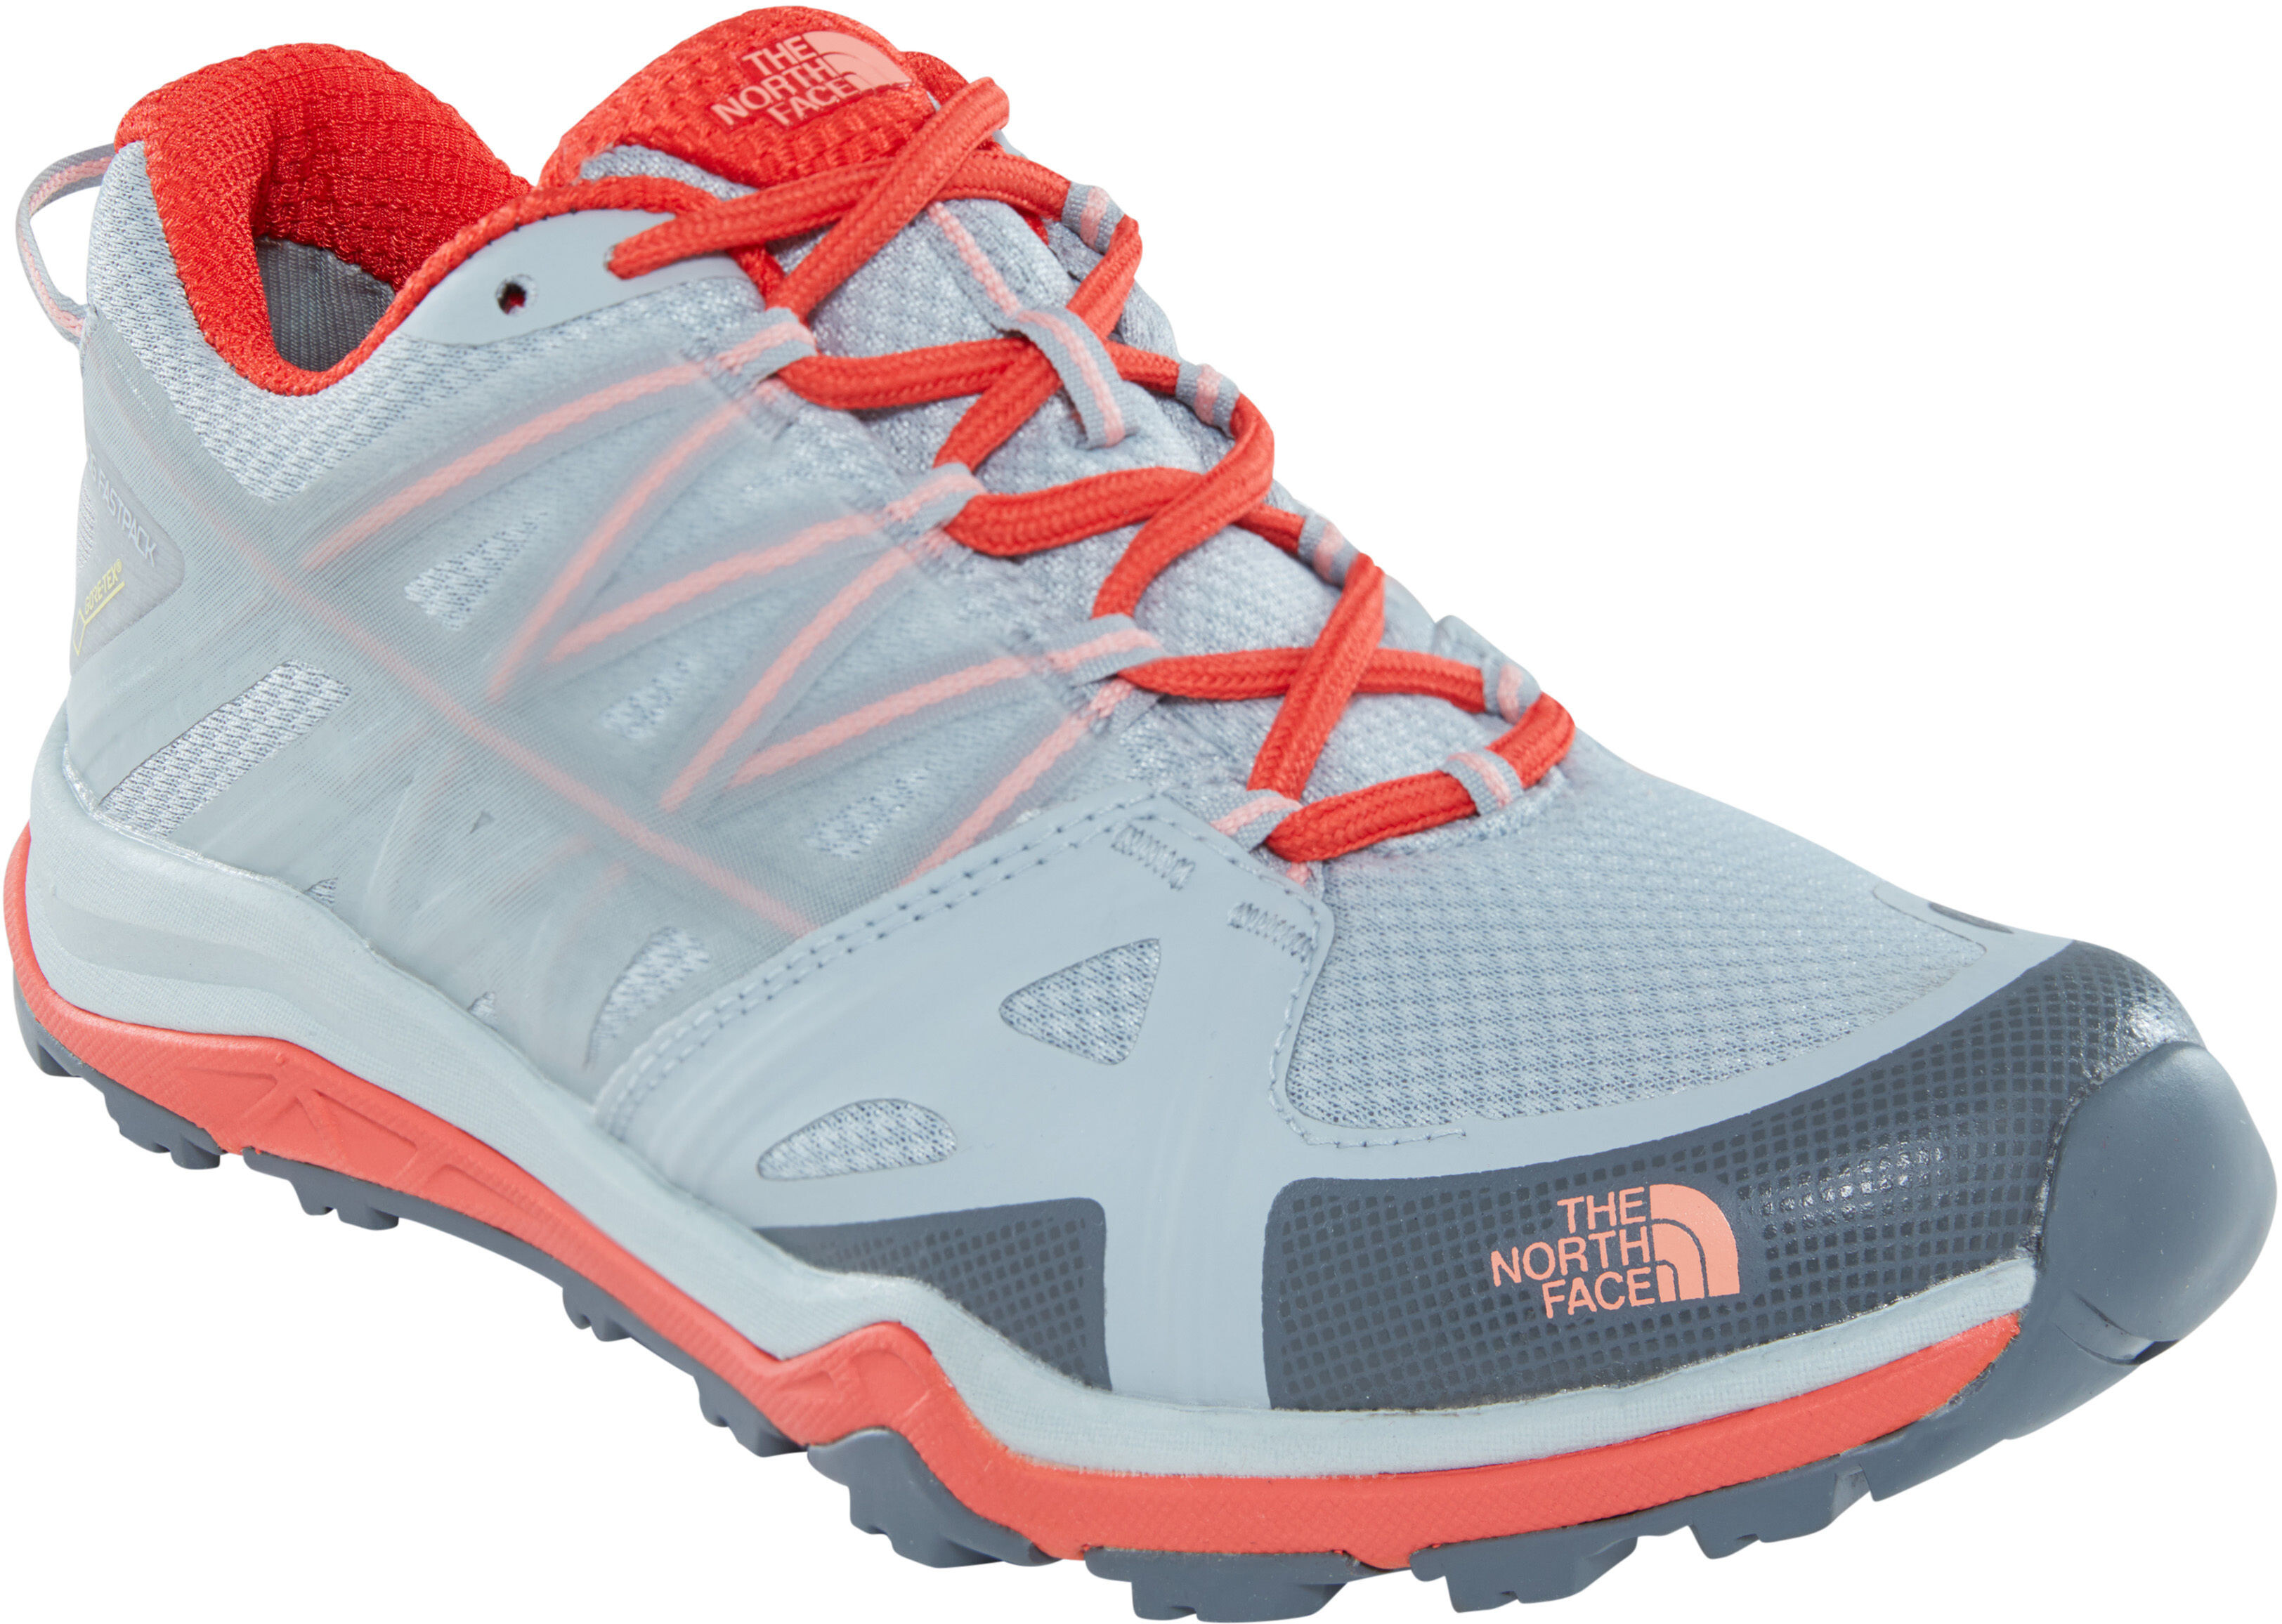 30292fbe4473 The North Face Hedgehog Fastpack Lite II GTX Shoes Women grey red at ...